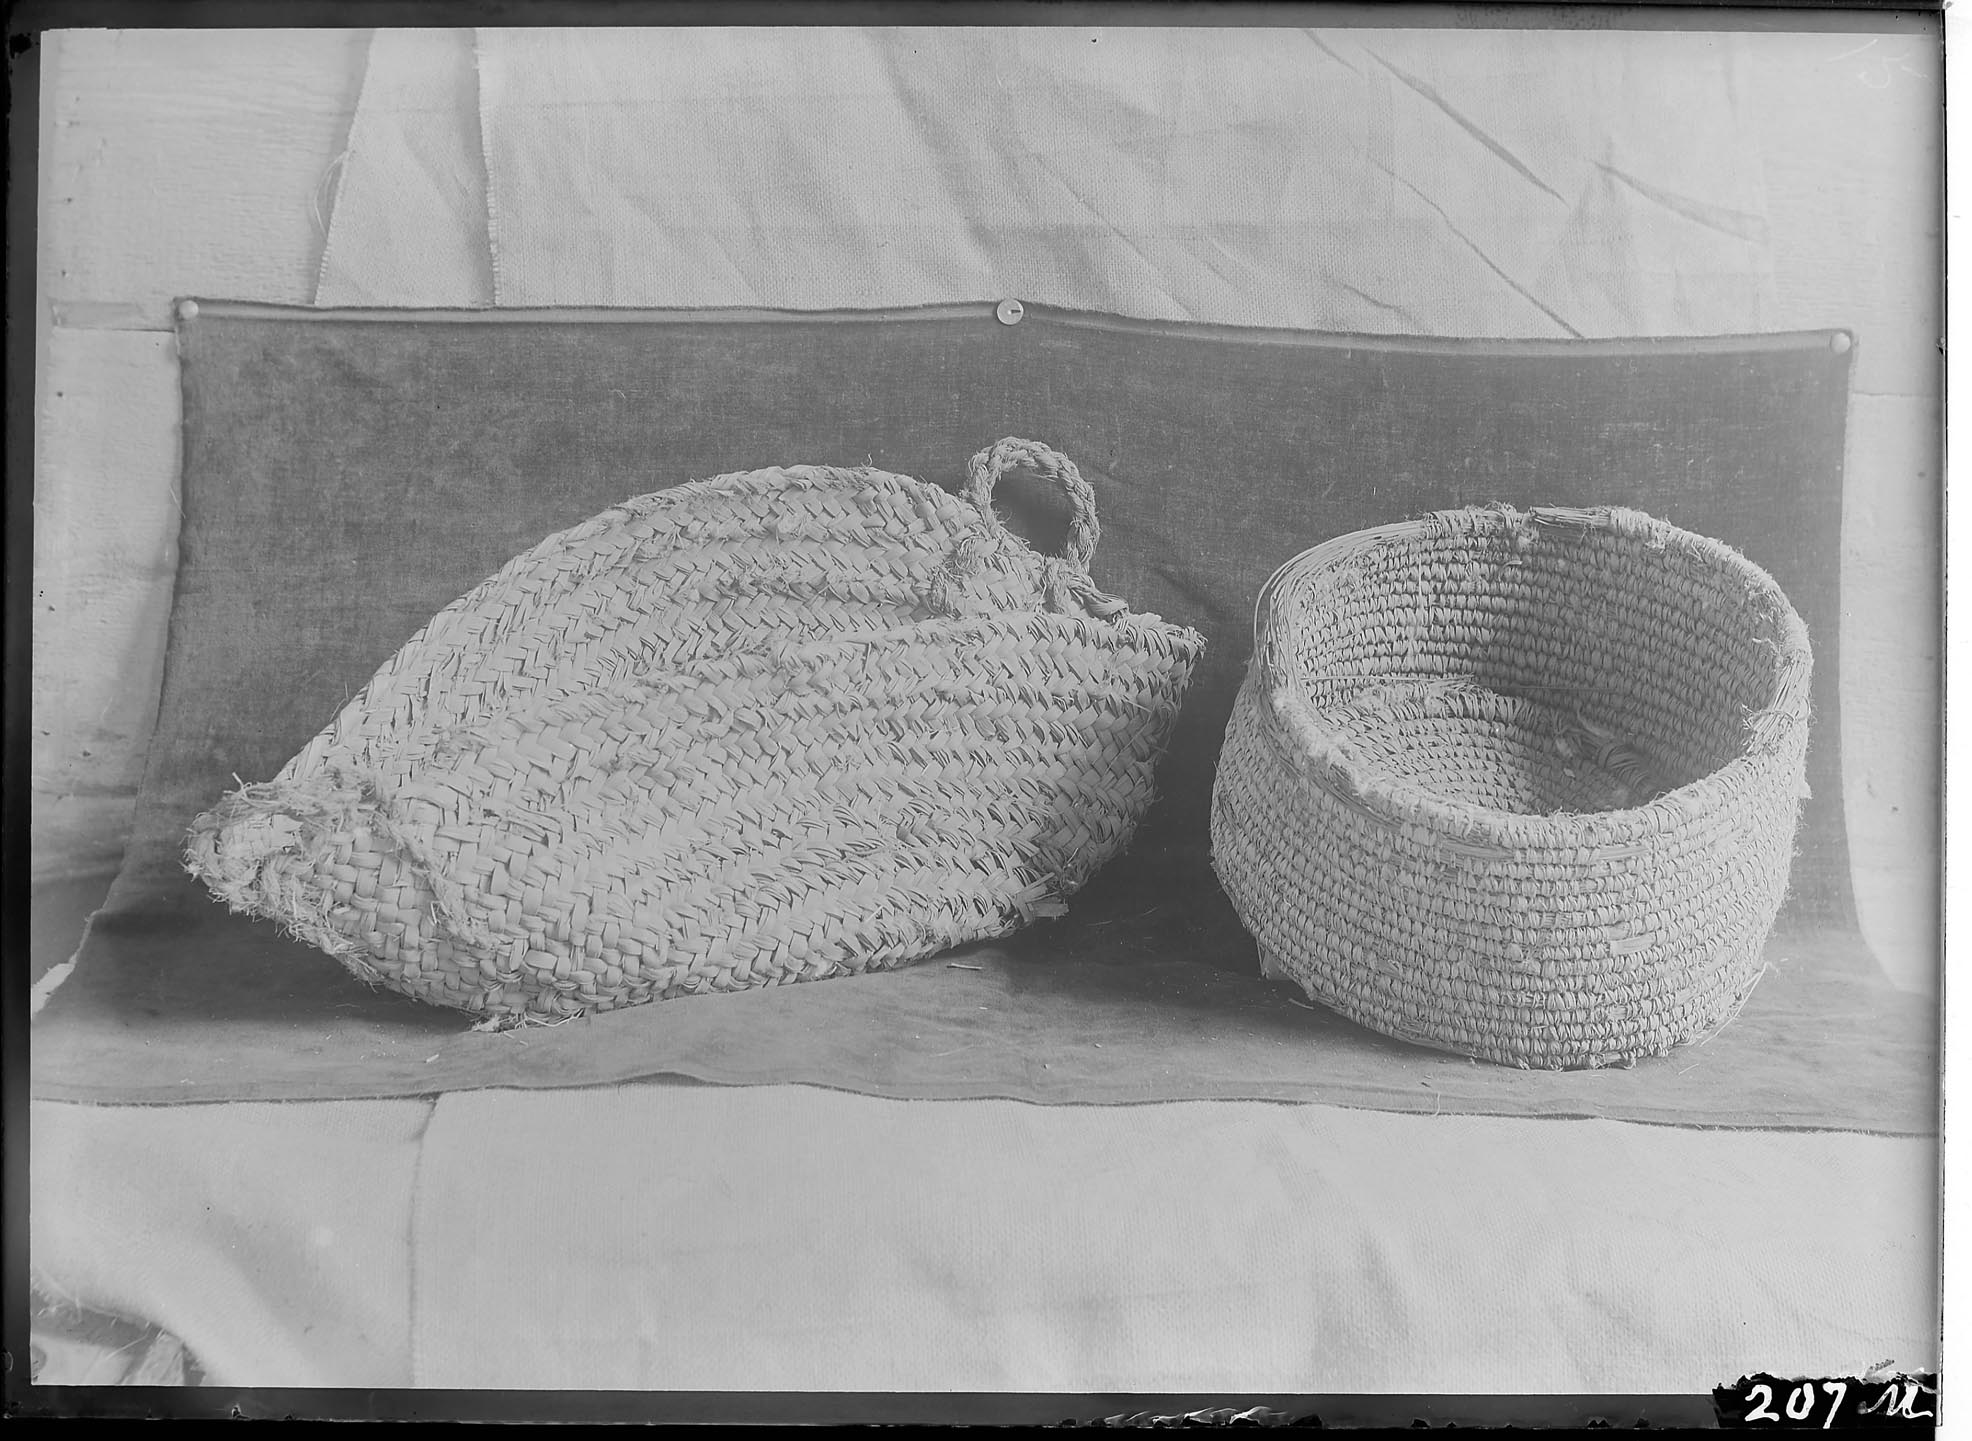 Fig. 21. More ancient baskets found in T.E. Peet's excavations at Abydos in 1911 — the example on the left bears a striking similarity to the baskets from al-Hagz. Photo courtesy of the  Egypt Exploration Society